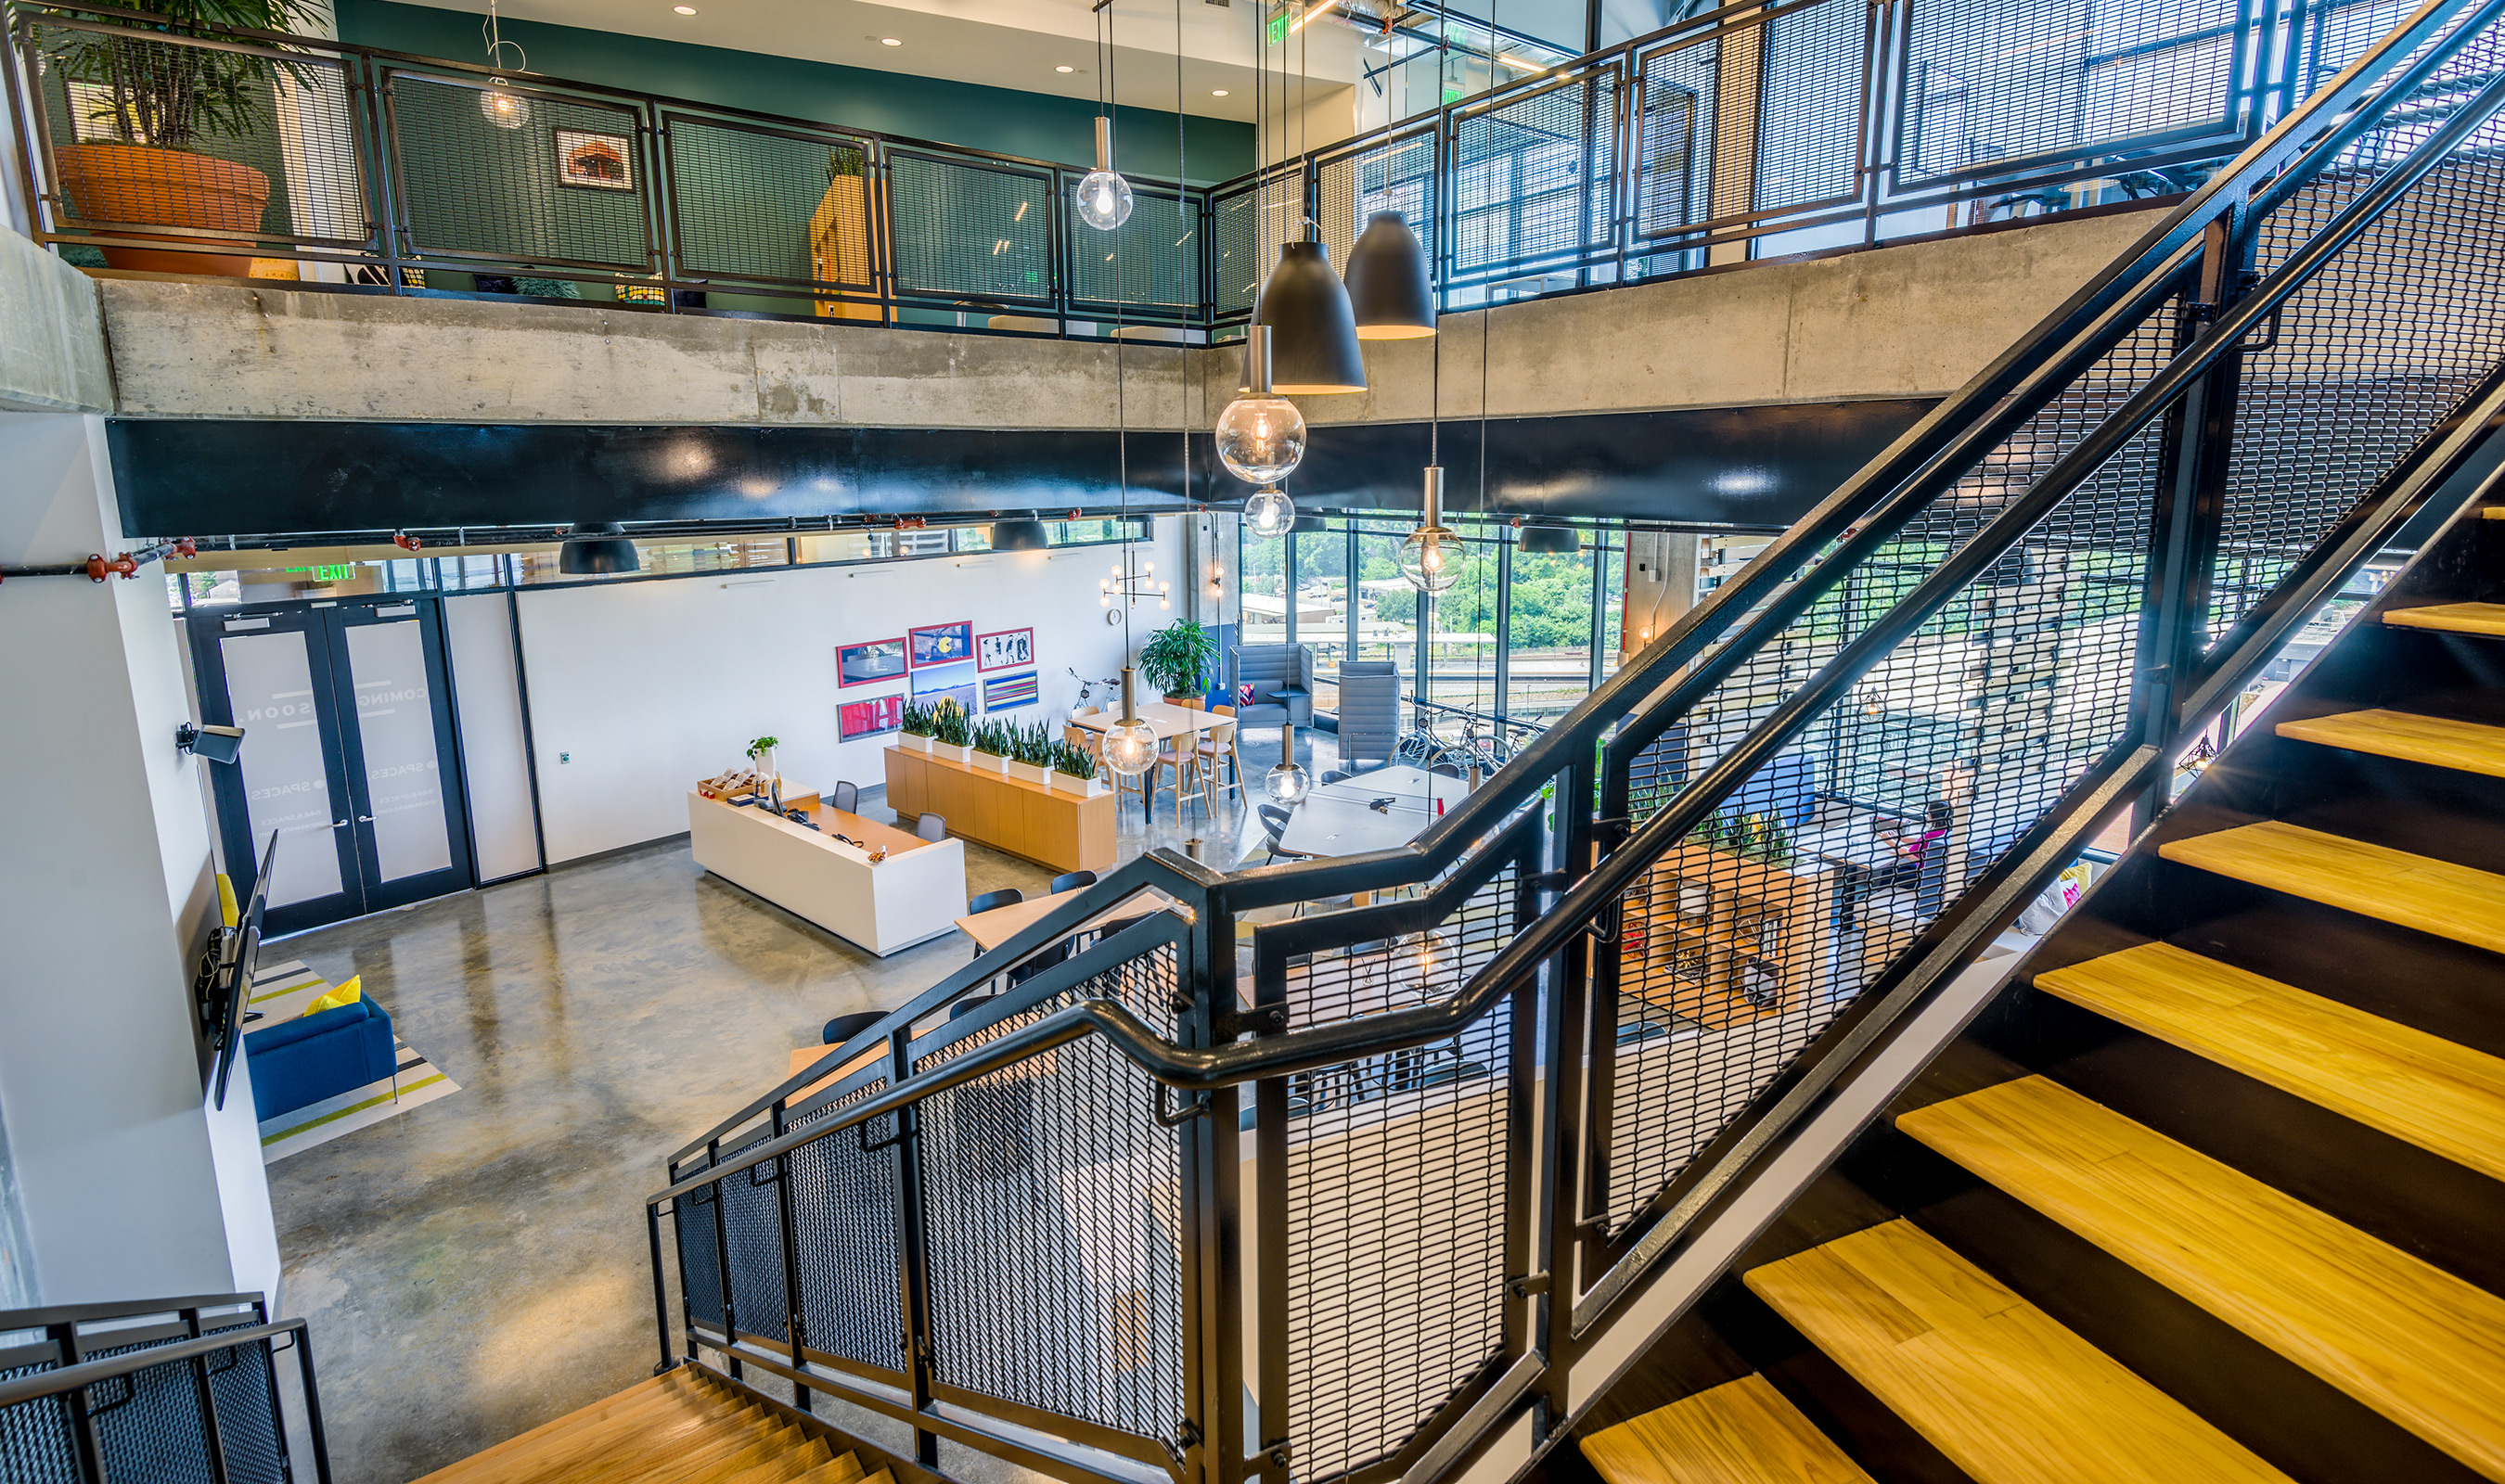 FPZ-16 adds an industrial element to the renovated warehouse.